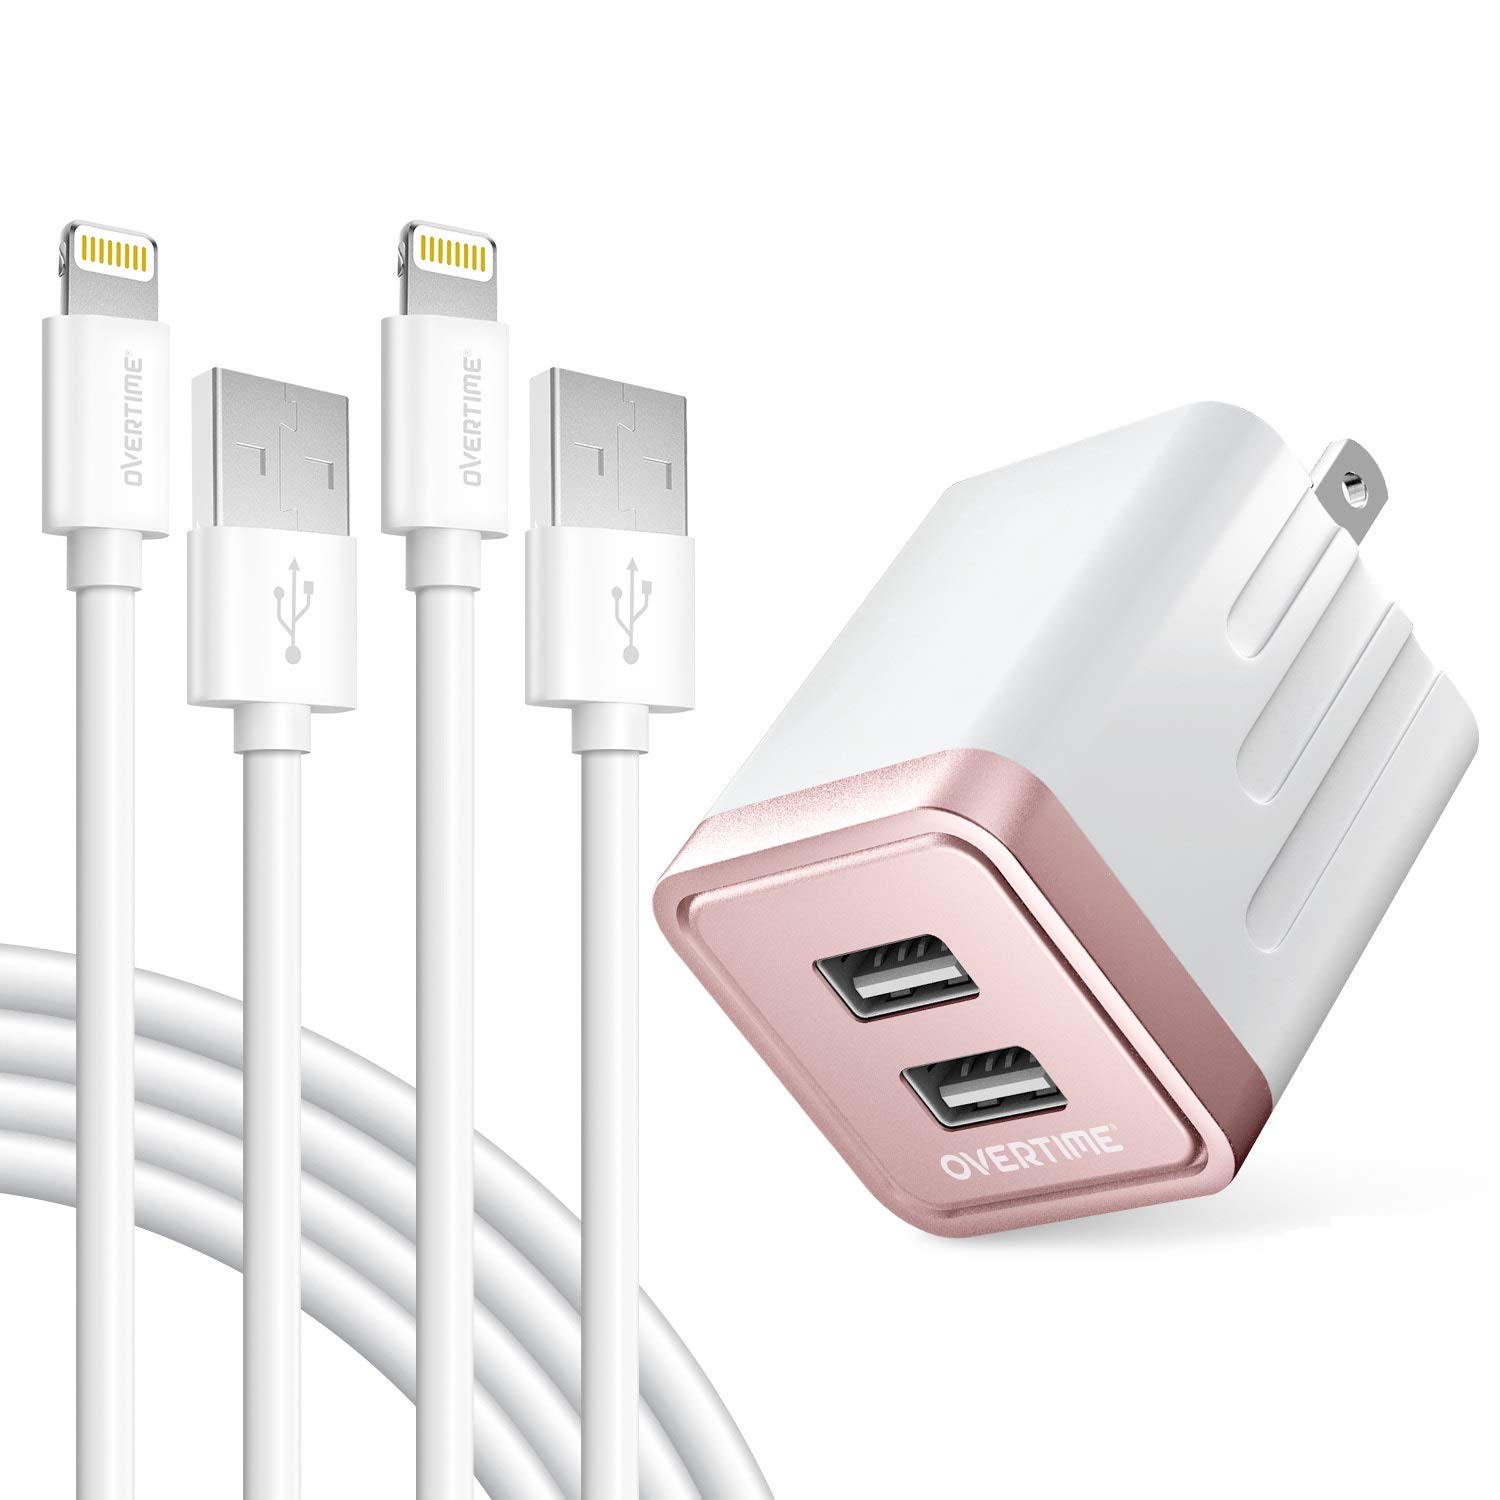 iPhone Charger Set, 2-Pack Overtime Apple MFi Certified Lightning Cables with 1 Dual USB Wall Adapter - 2.4 AMP Compatible w/iPhone 11 Pro Max XS XR X 8 7 6S 6 Plus SE iPad (Rose Gold/White, 6ft)